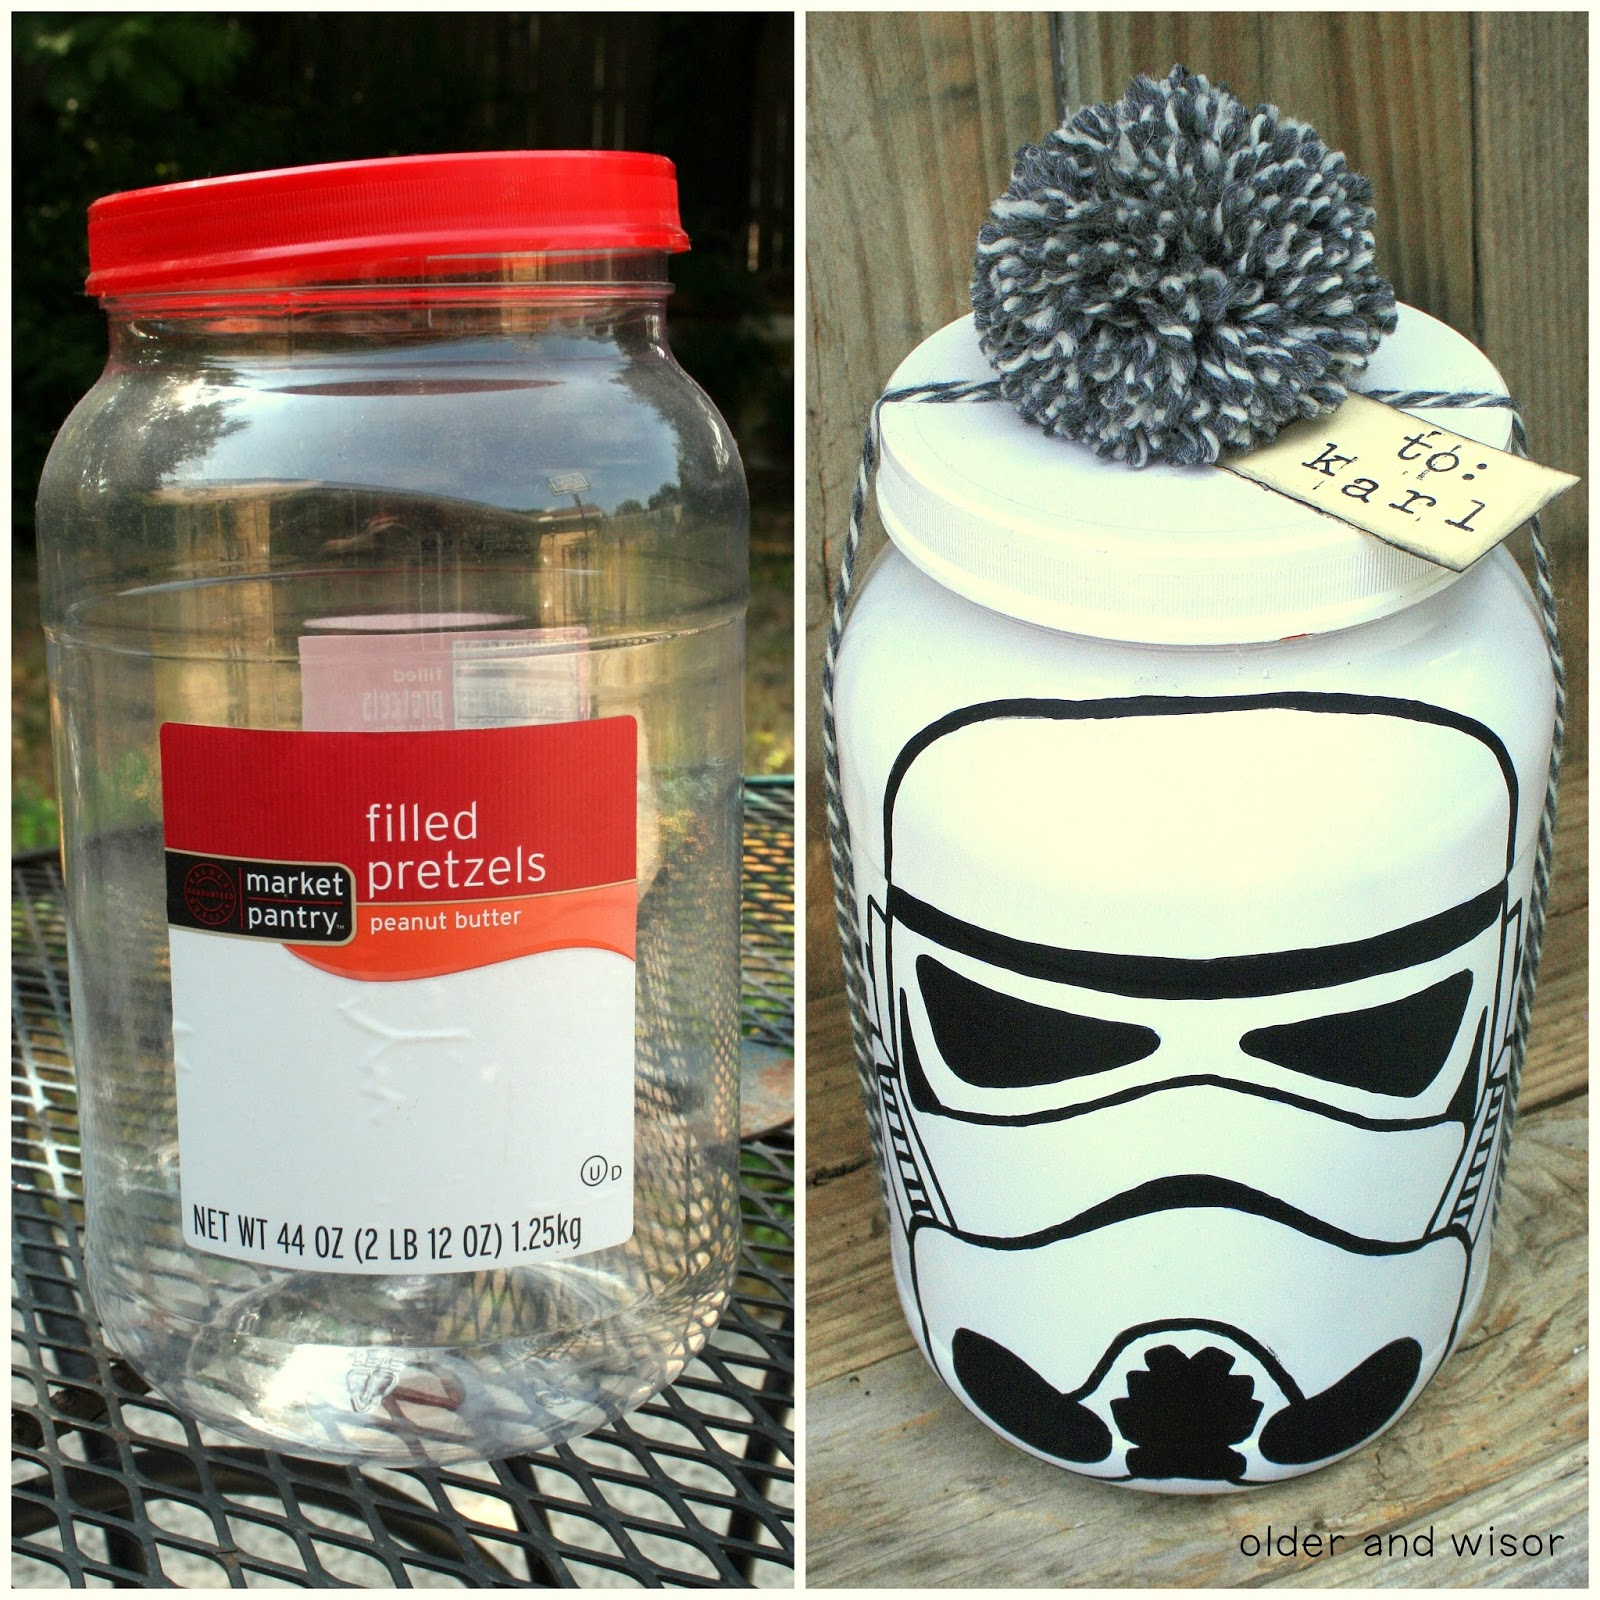 older and wisor diy stormtrooper gift wrap recycling star wars style. Black Bedroom Furniture Sets. Home Design Ideas